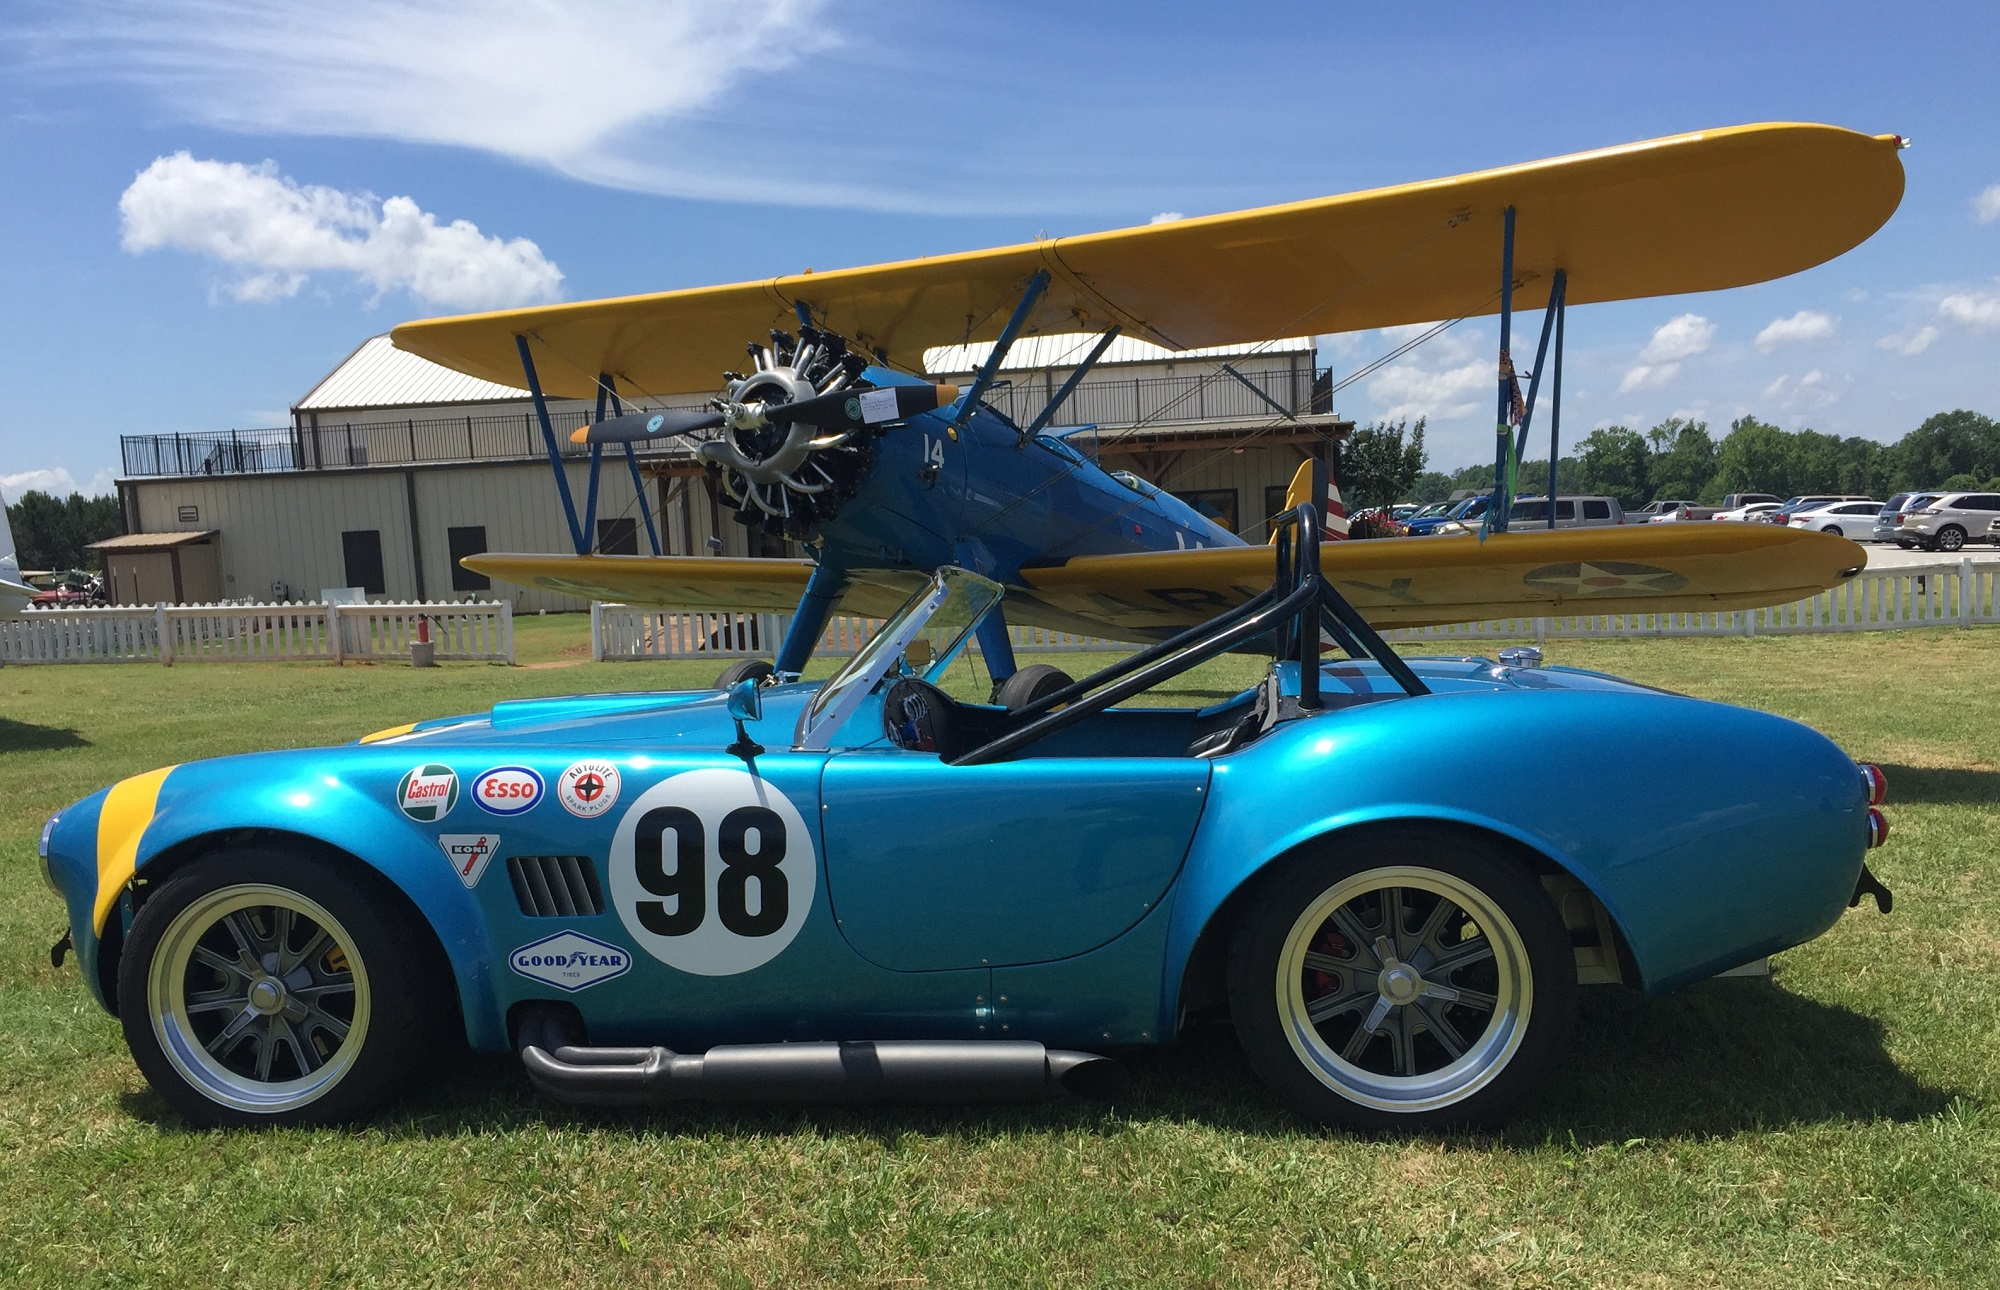 Factory five forums the front page june 2018 garry bopp malvernweather Gallery